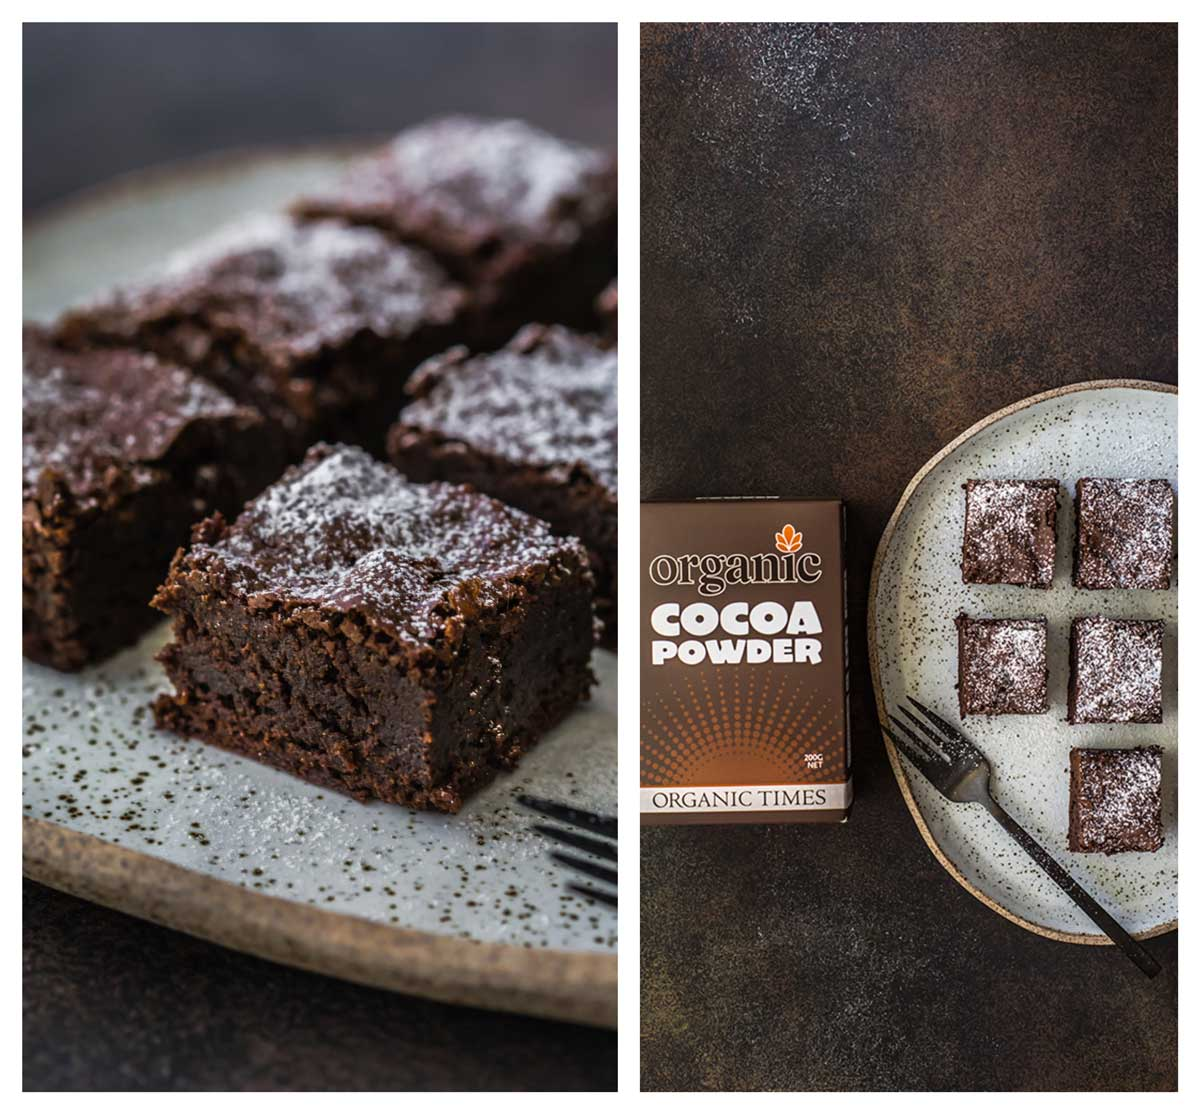 Chocolate brownies with a box of Organic Times Cocoa Powder